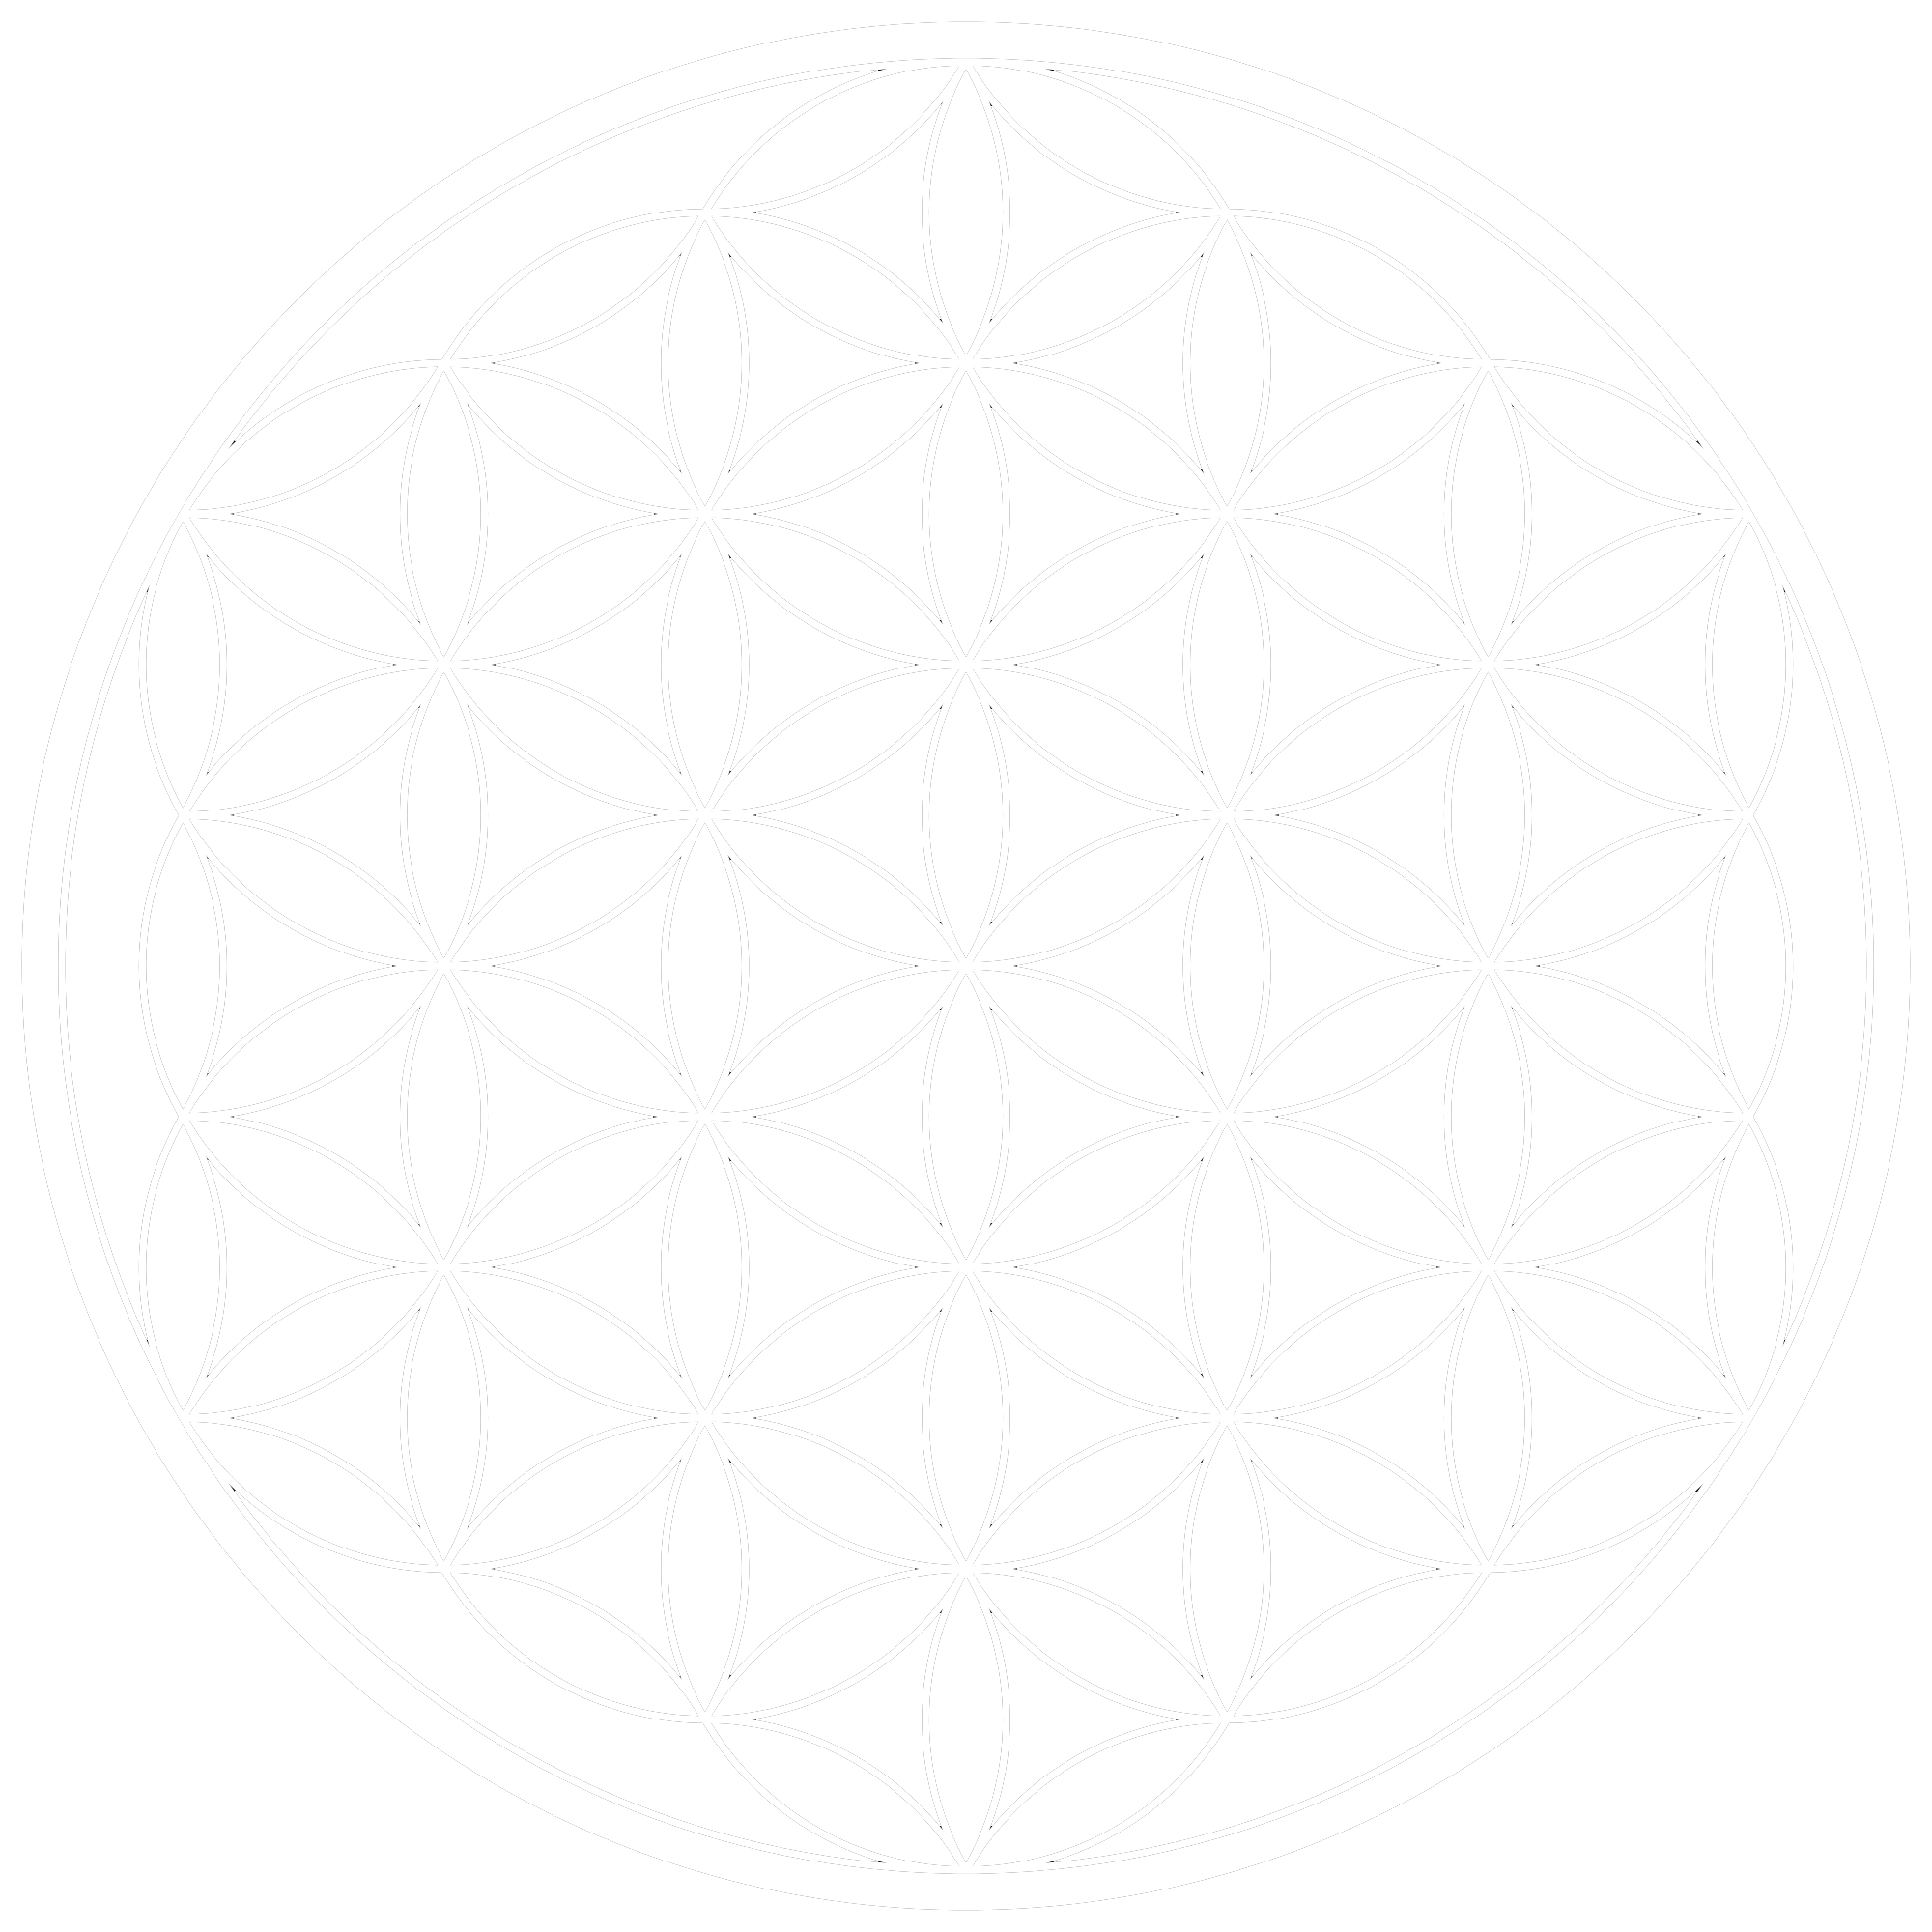 White flower of life png. Touch light theta healing